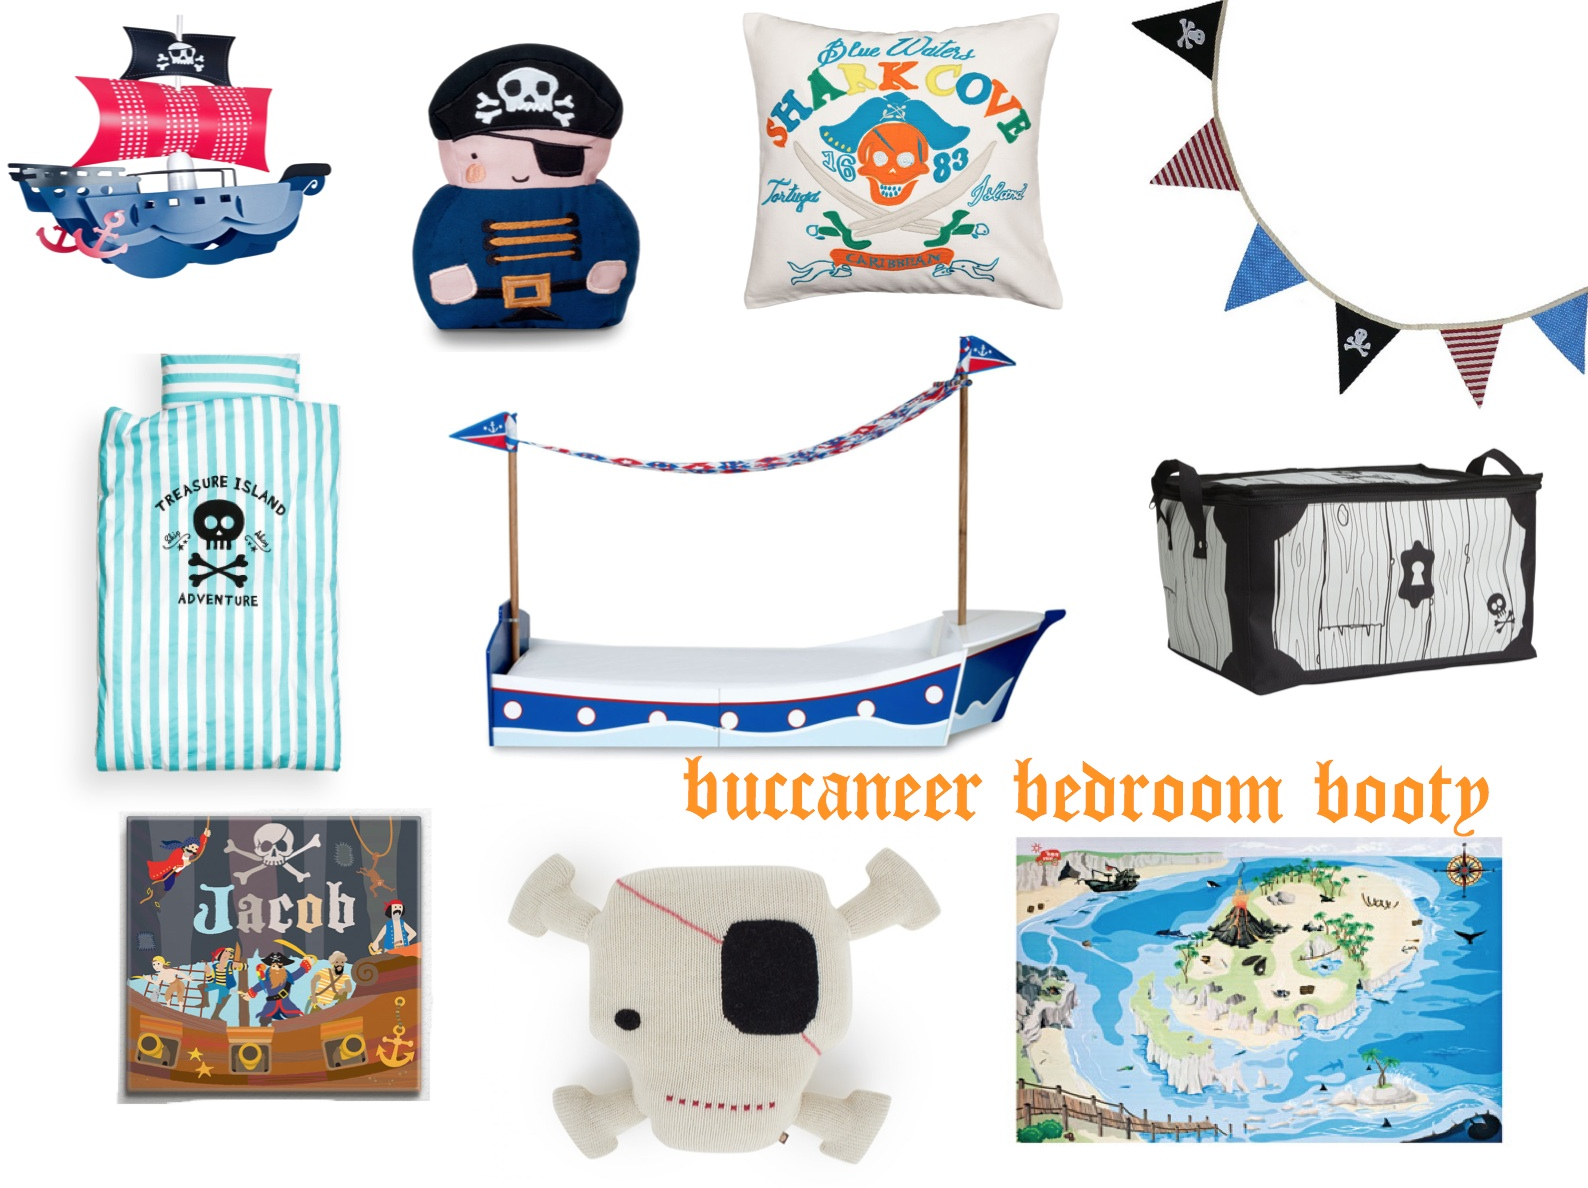 mamasVIB | V. I. BUYS: YO HO HO! A cool Pirate style bedroom buys for little lads or lassies…, bedroom trends, kids bedding, kids bedroom style, V. I. BUYS, interiors, bed,